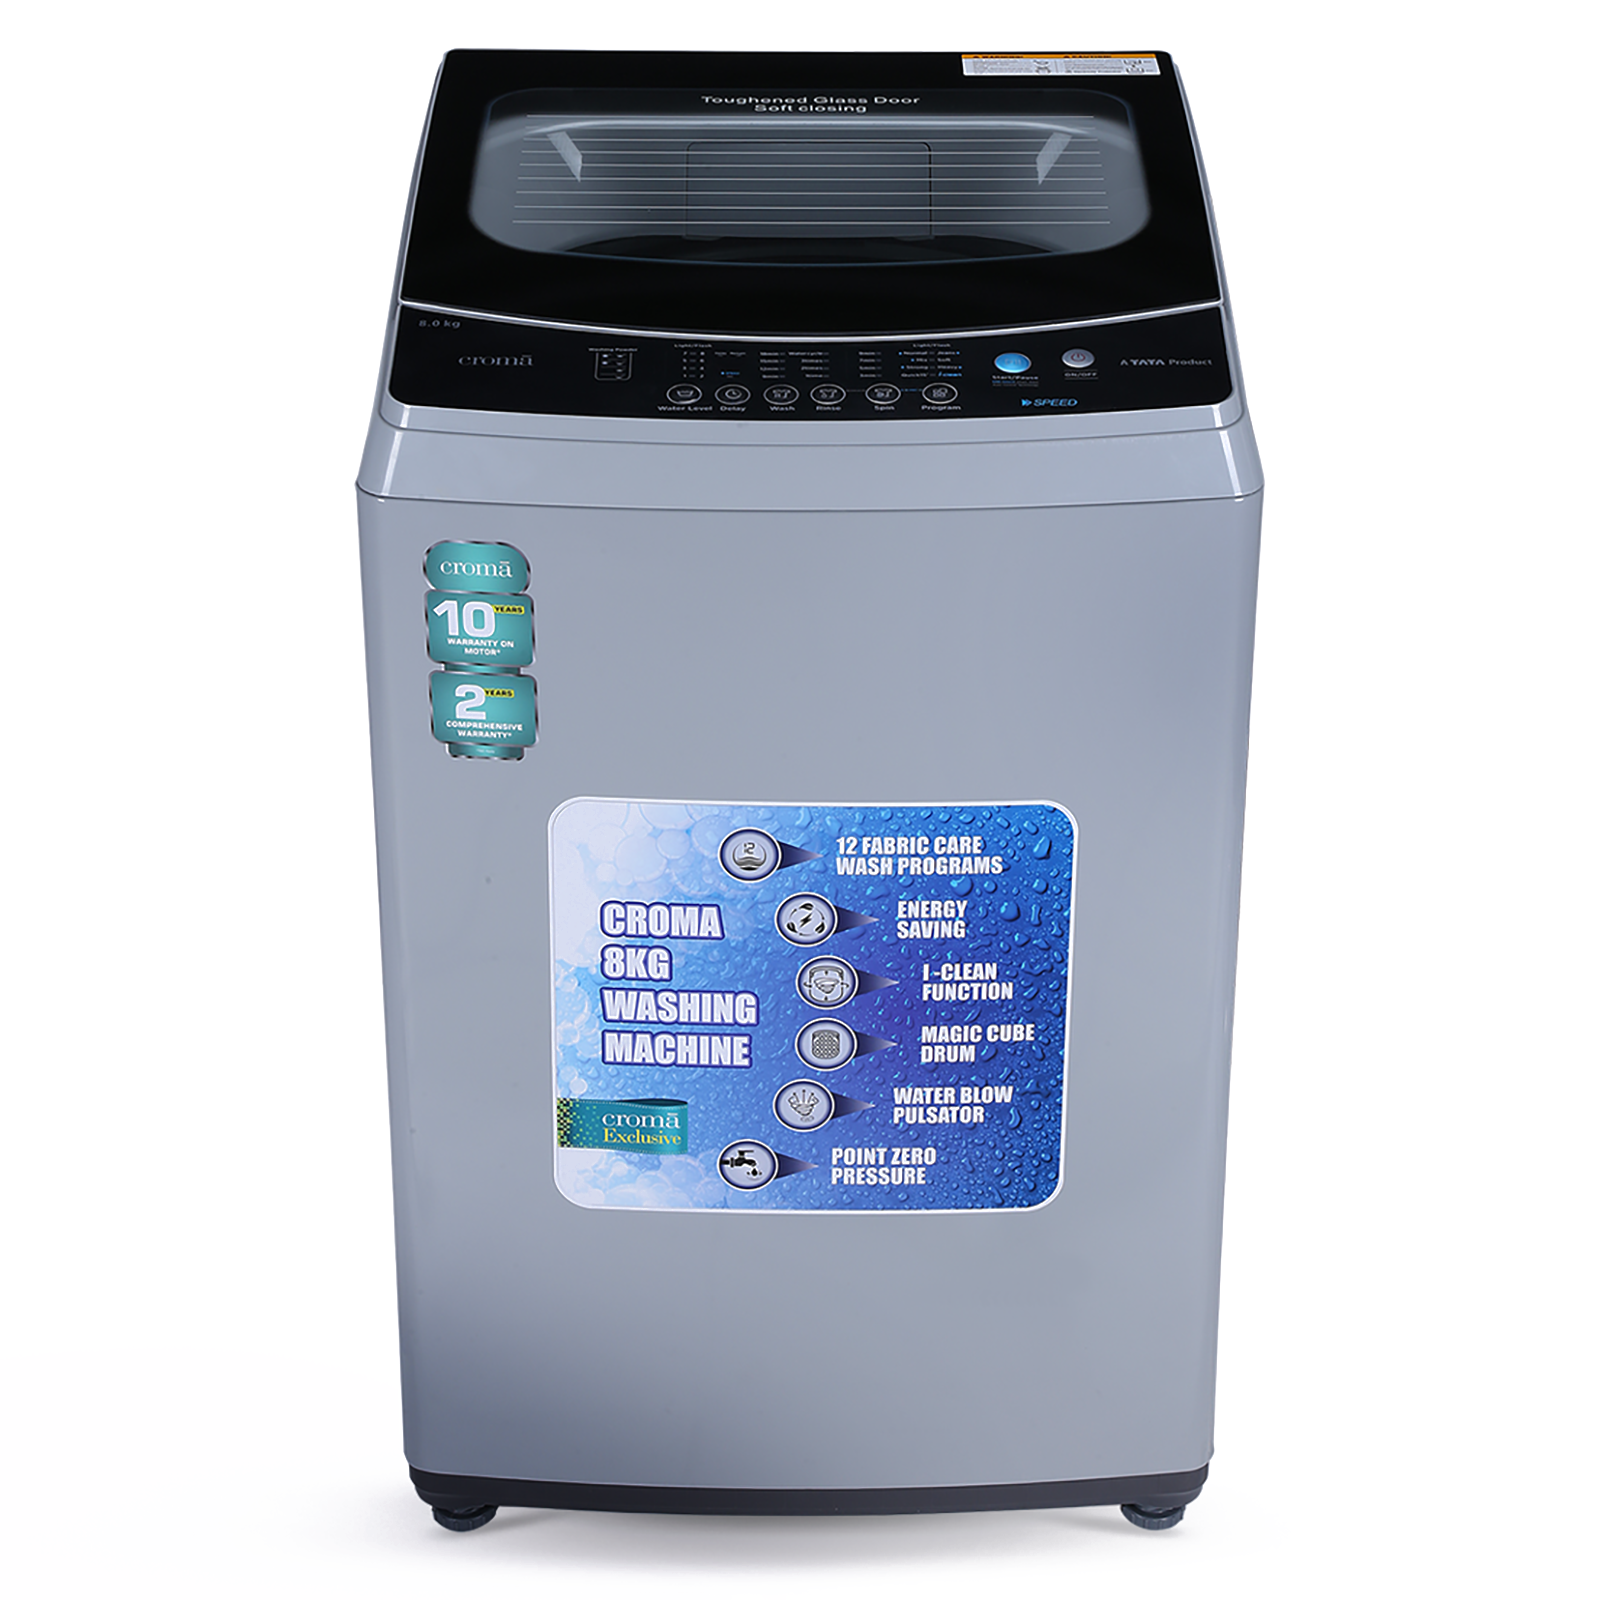 Croma 8 Kg Fully Automatic Top Load Washing Machine (CRAW1402, Grey)_1